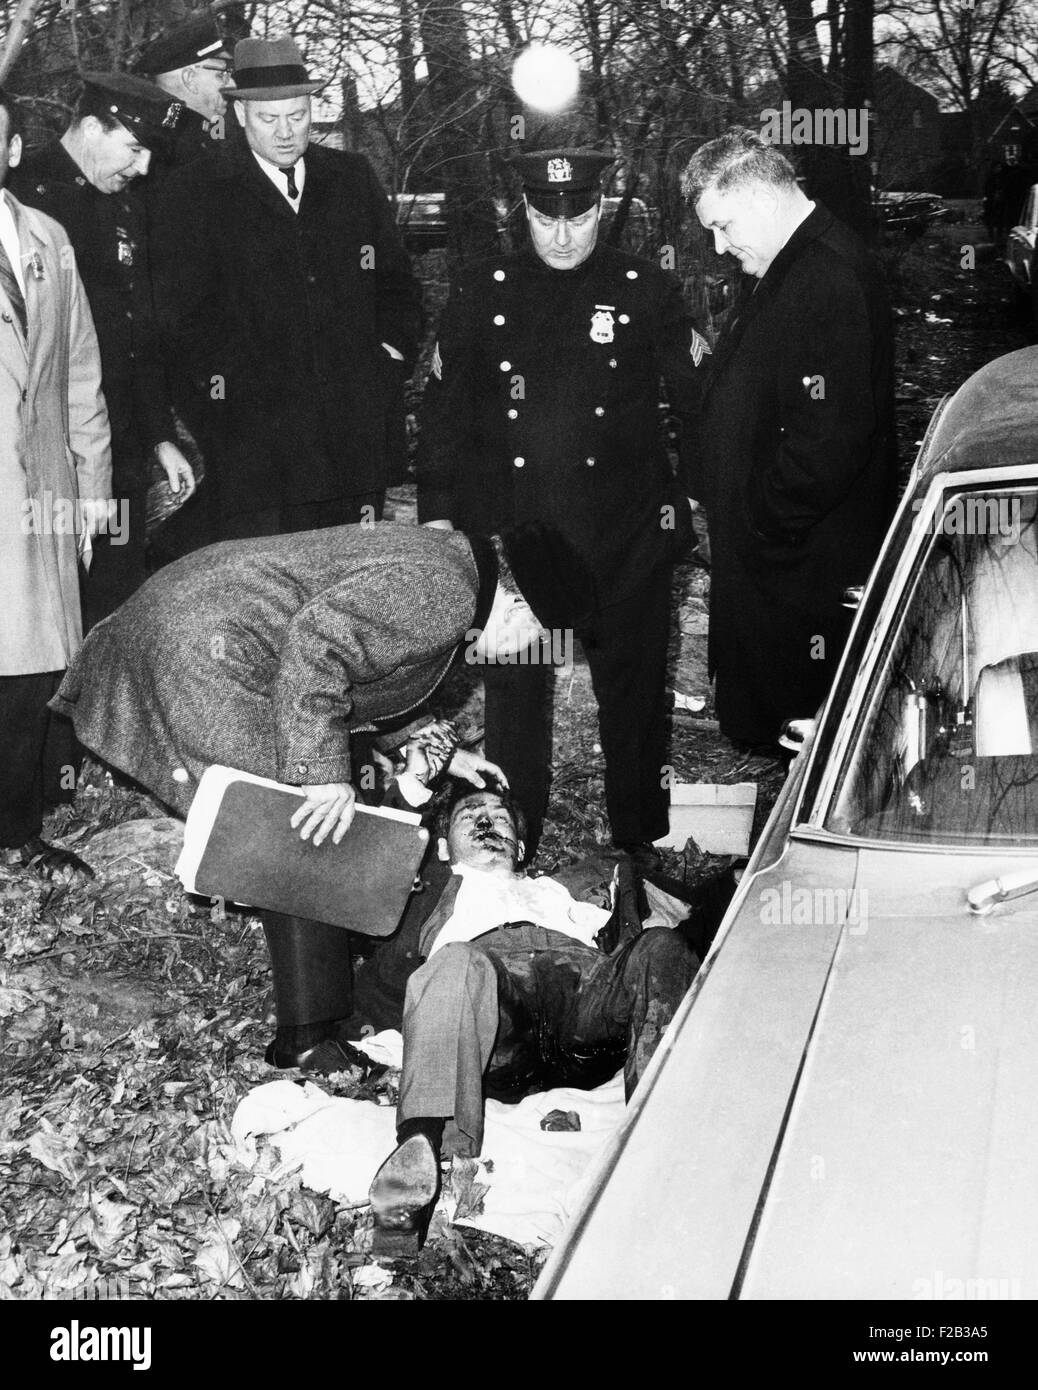 Vincent Barile was found slumped in front seat of a parked car in the Bronx, NYC, Jan. 21, 1966. He was a known - Stock Image